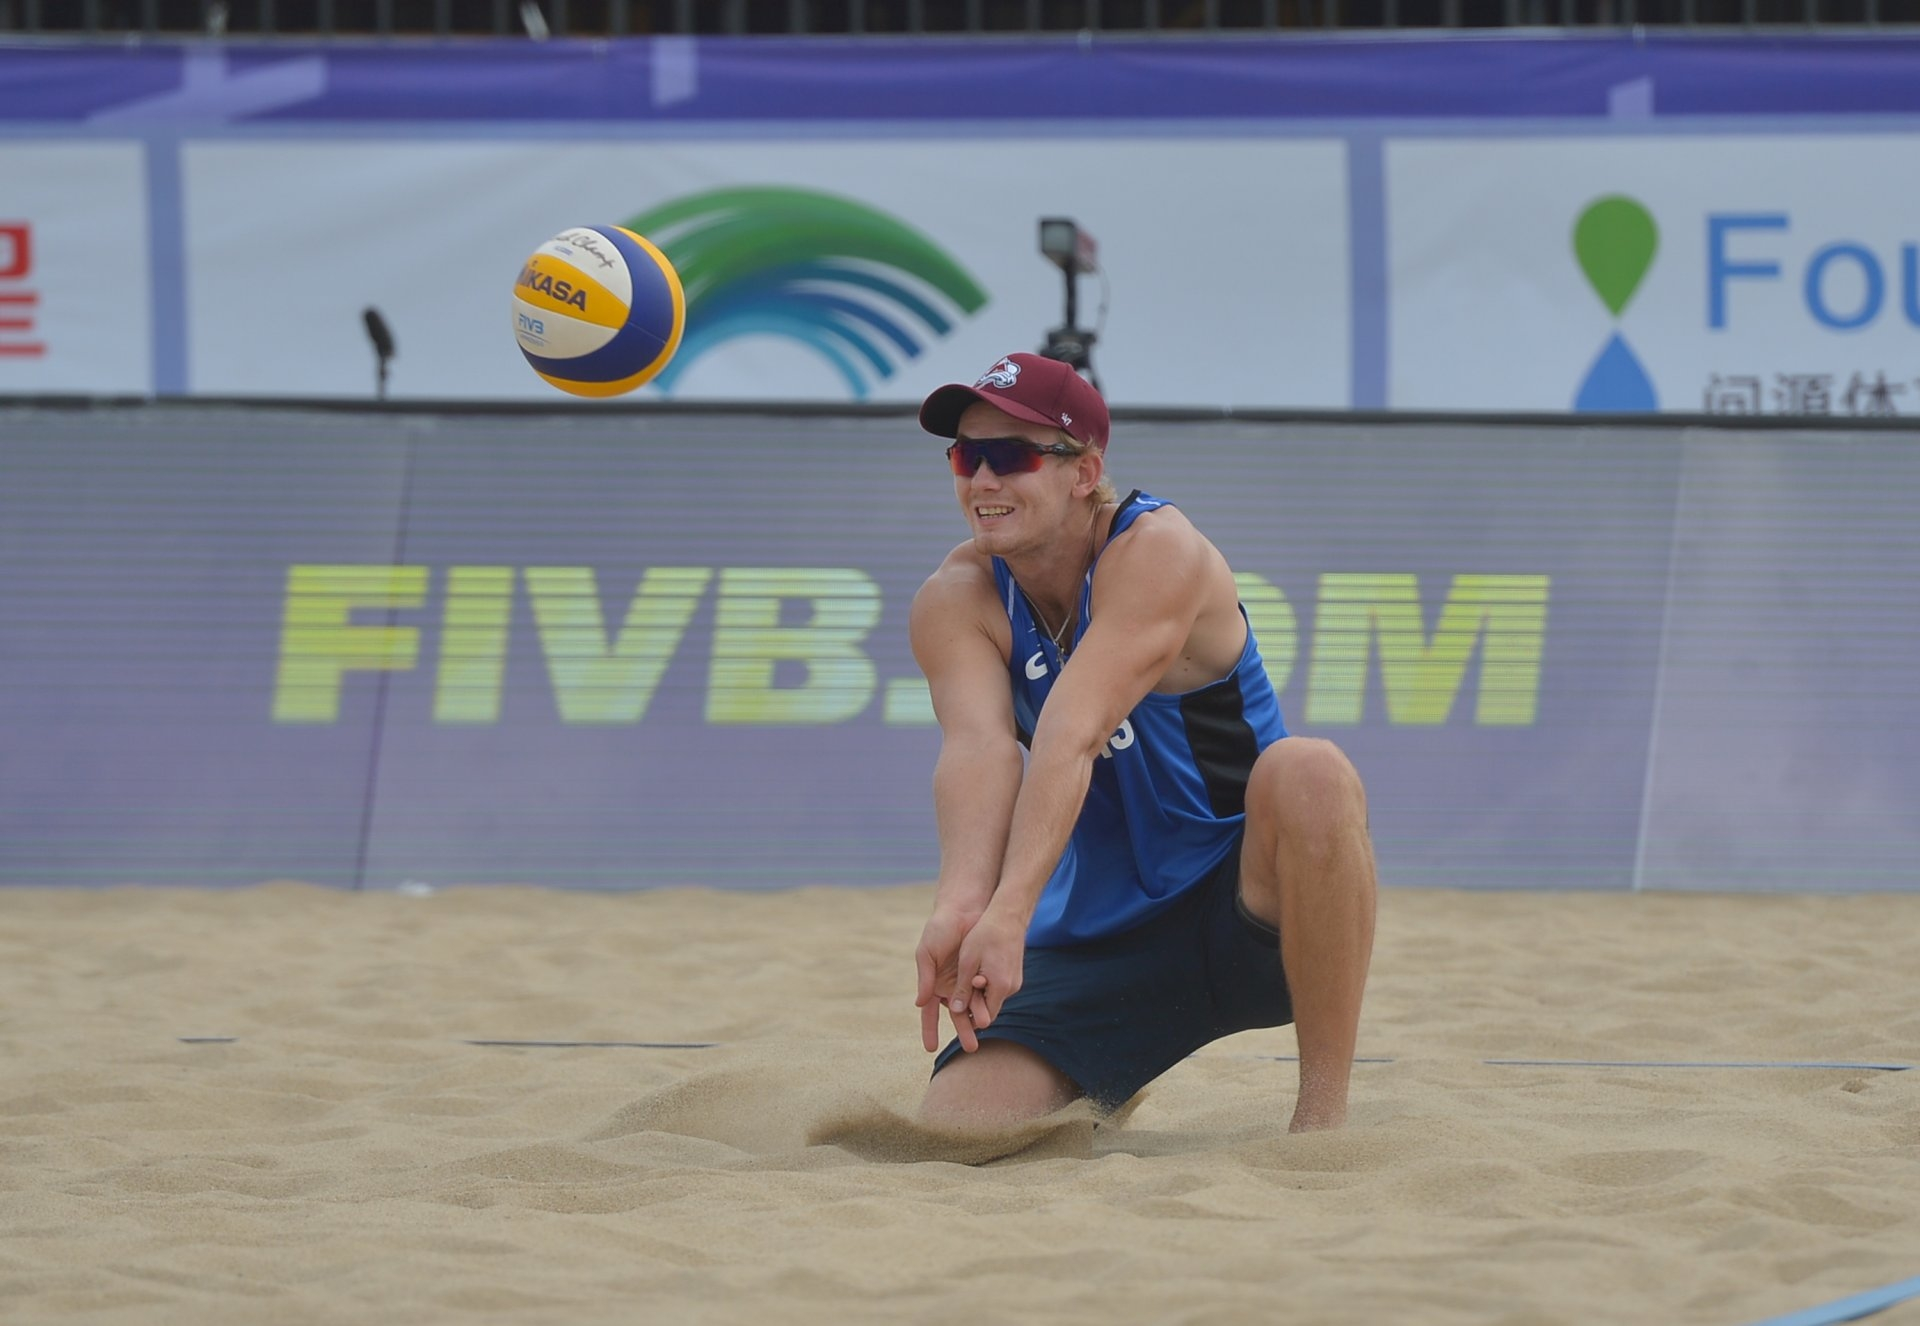 Leshukov was chosen to be Semenov's partner when he returned to beach volleyball (Photocredit: FIVB)